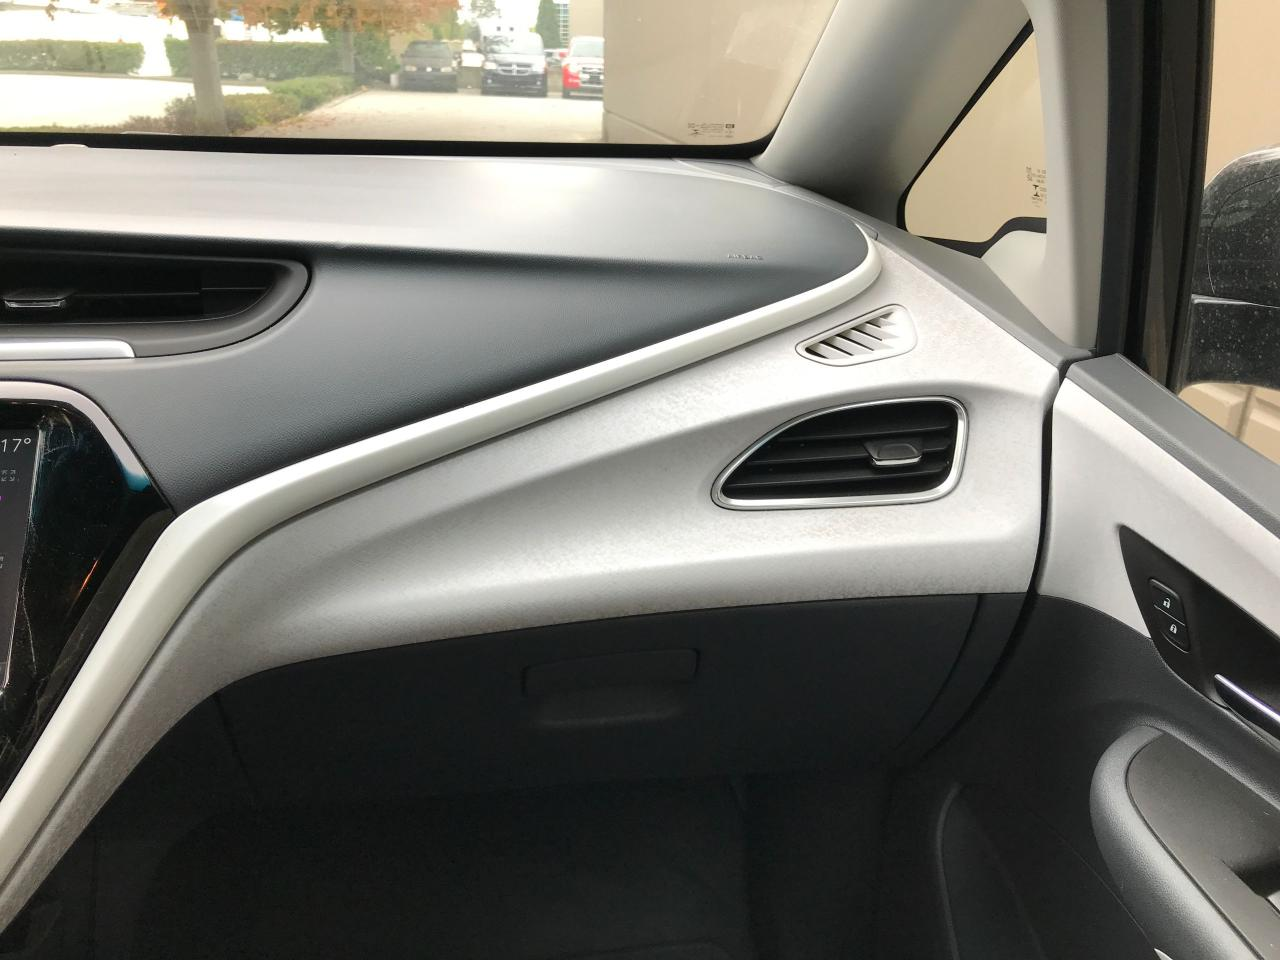 Groovy 2017 Chevrolet Bolt In Richmond Global Auto Marine Exchange Inzonedesignstudio Interior Chair Design Inzonedesignstudiocom